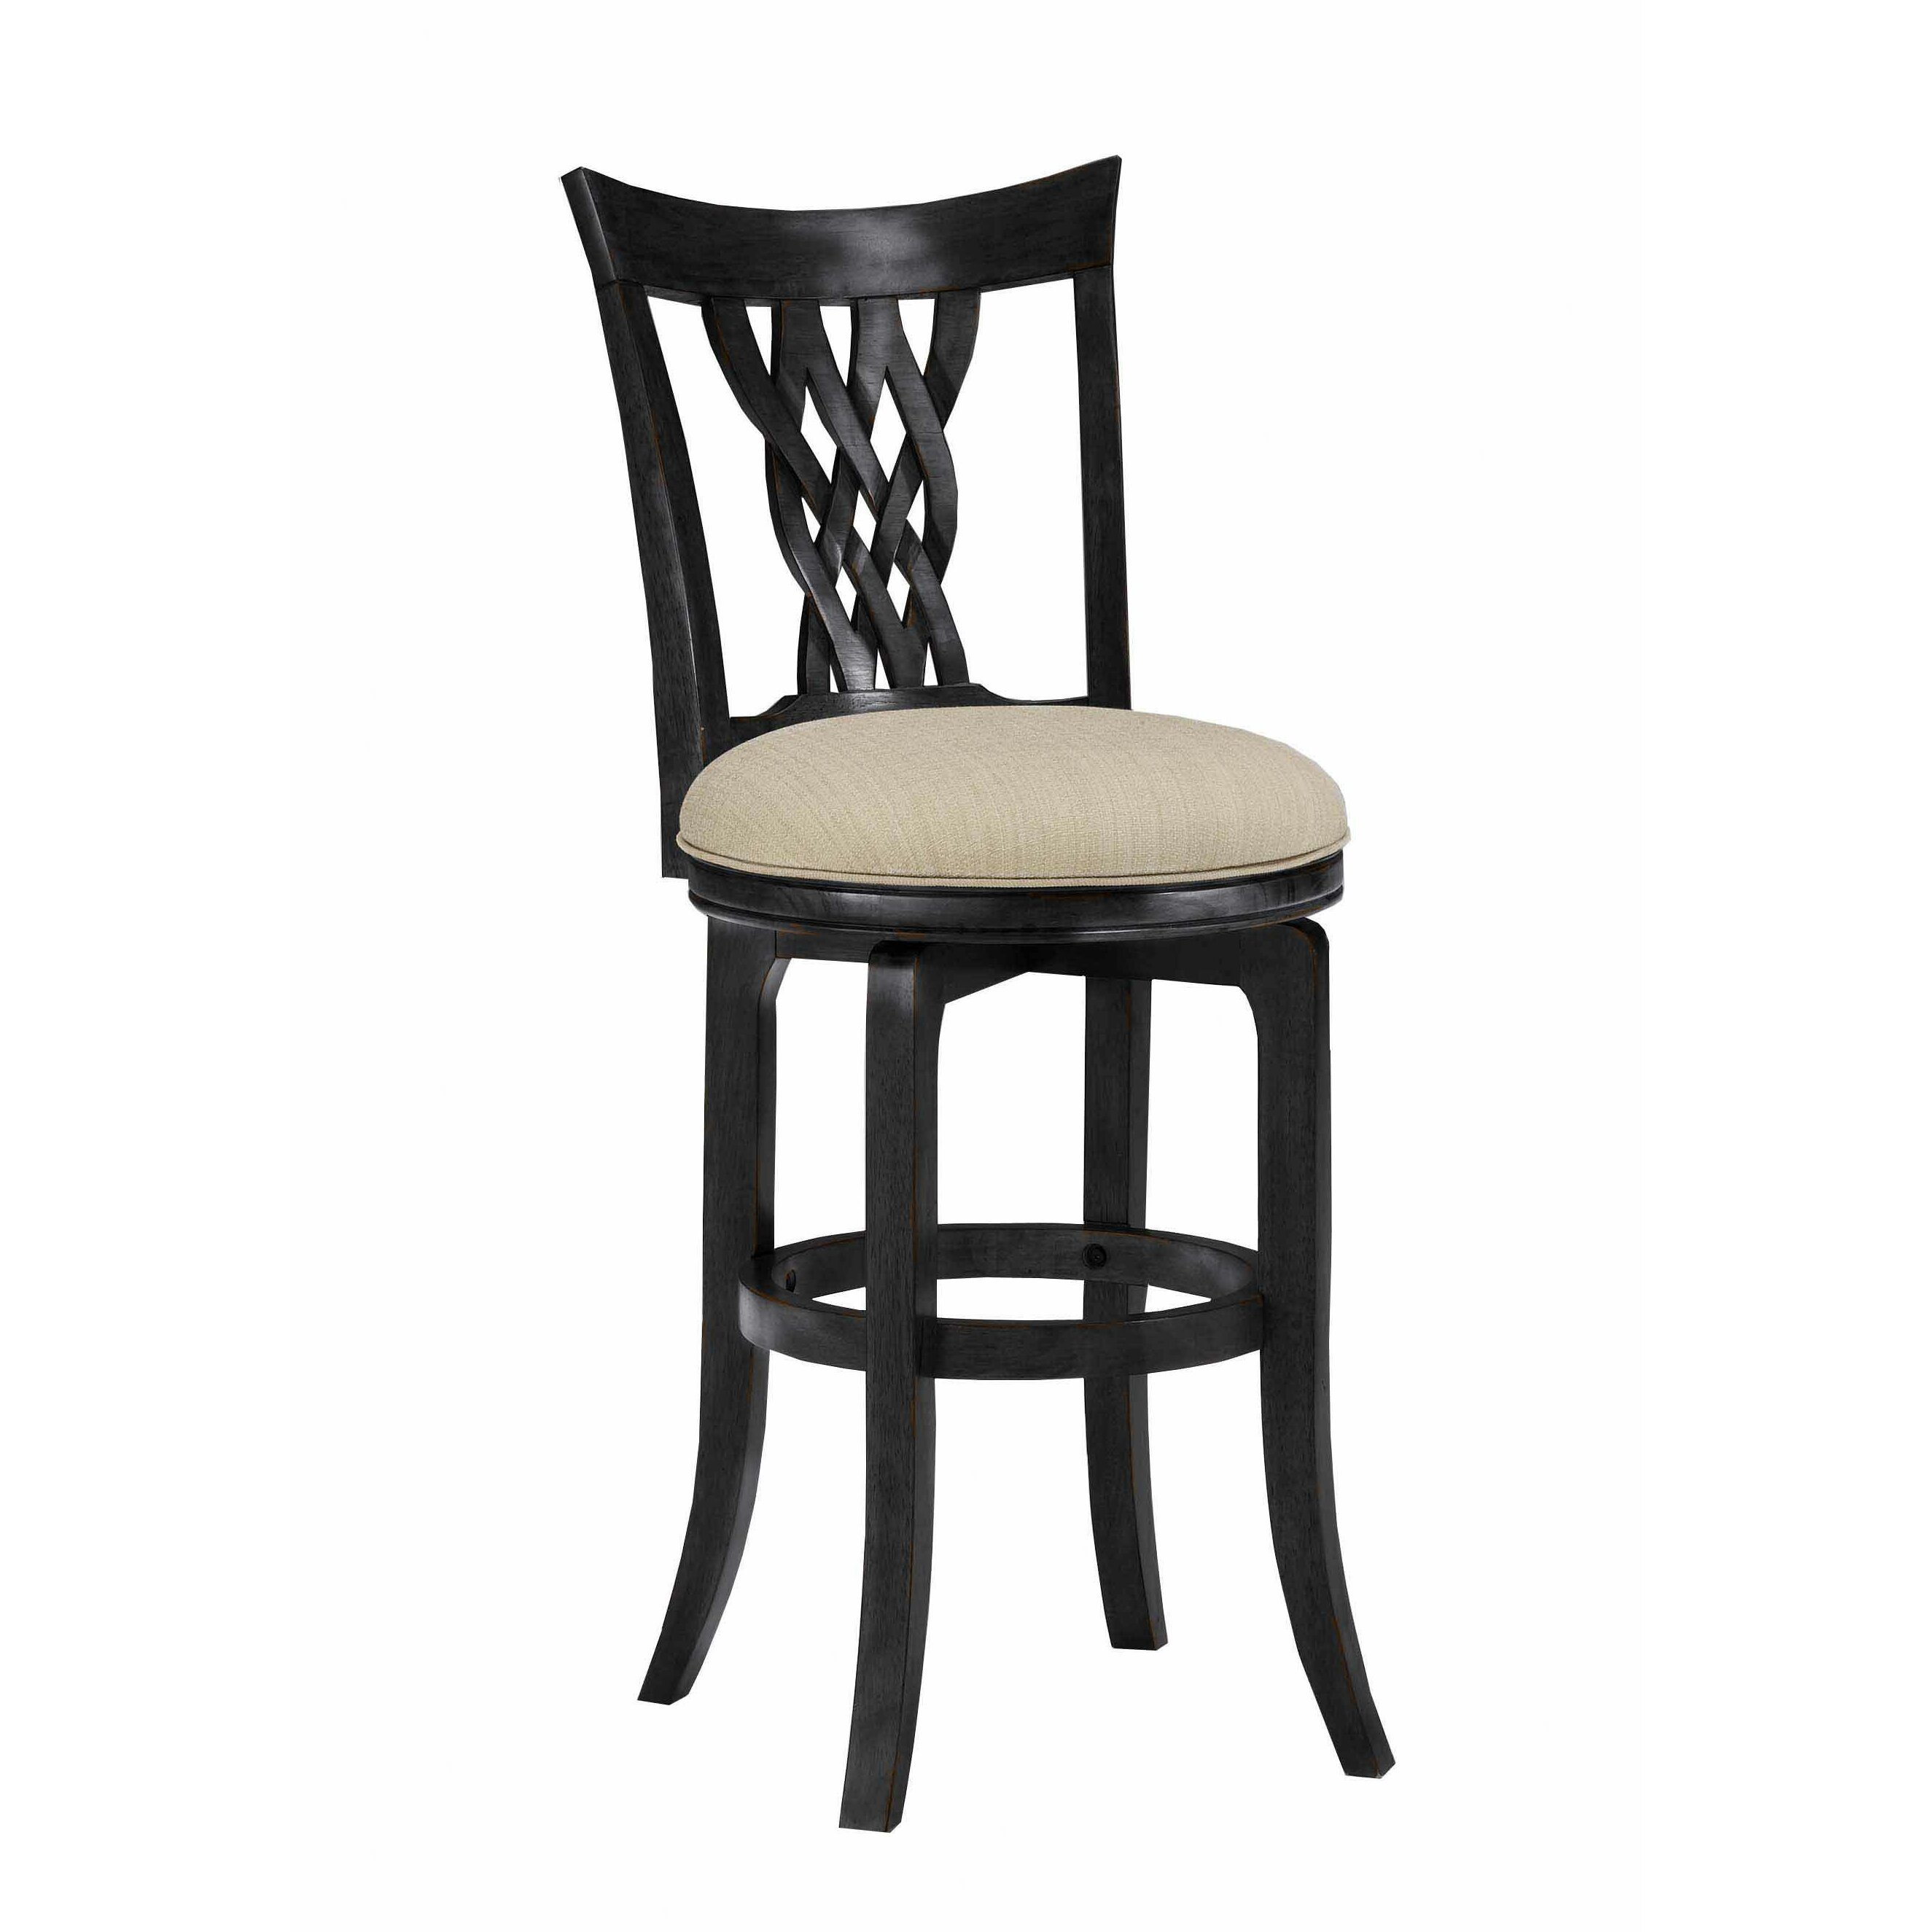 Darby Home Co Tullis 26quot Swivel Bar Stool amp Reviews Wayfair : Darby Home Co Tullis 26 Swivel Bar Stool from www.wayfair.com size 2650 x 2650 jpeg 382kB